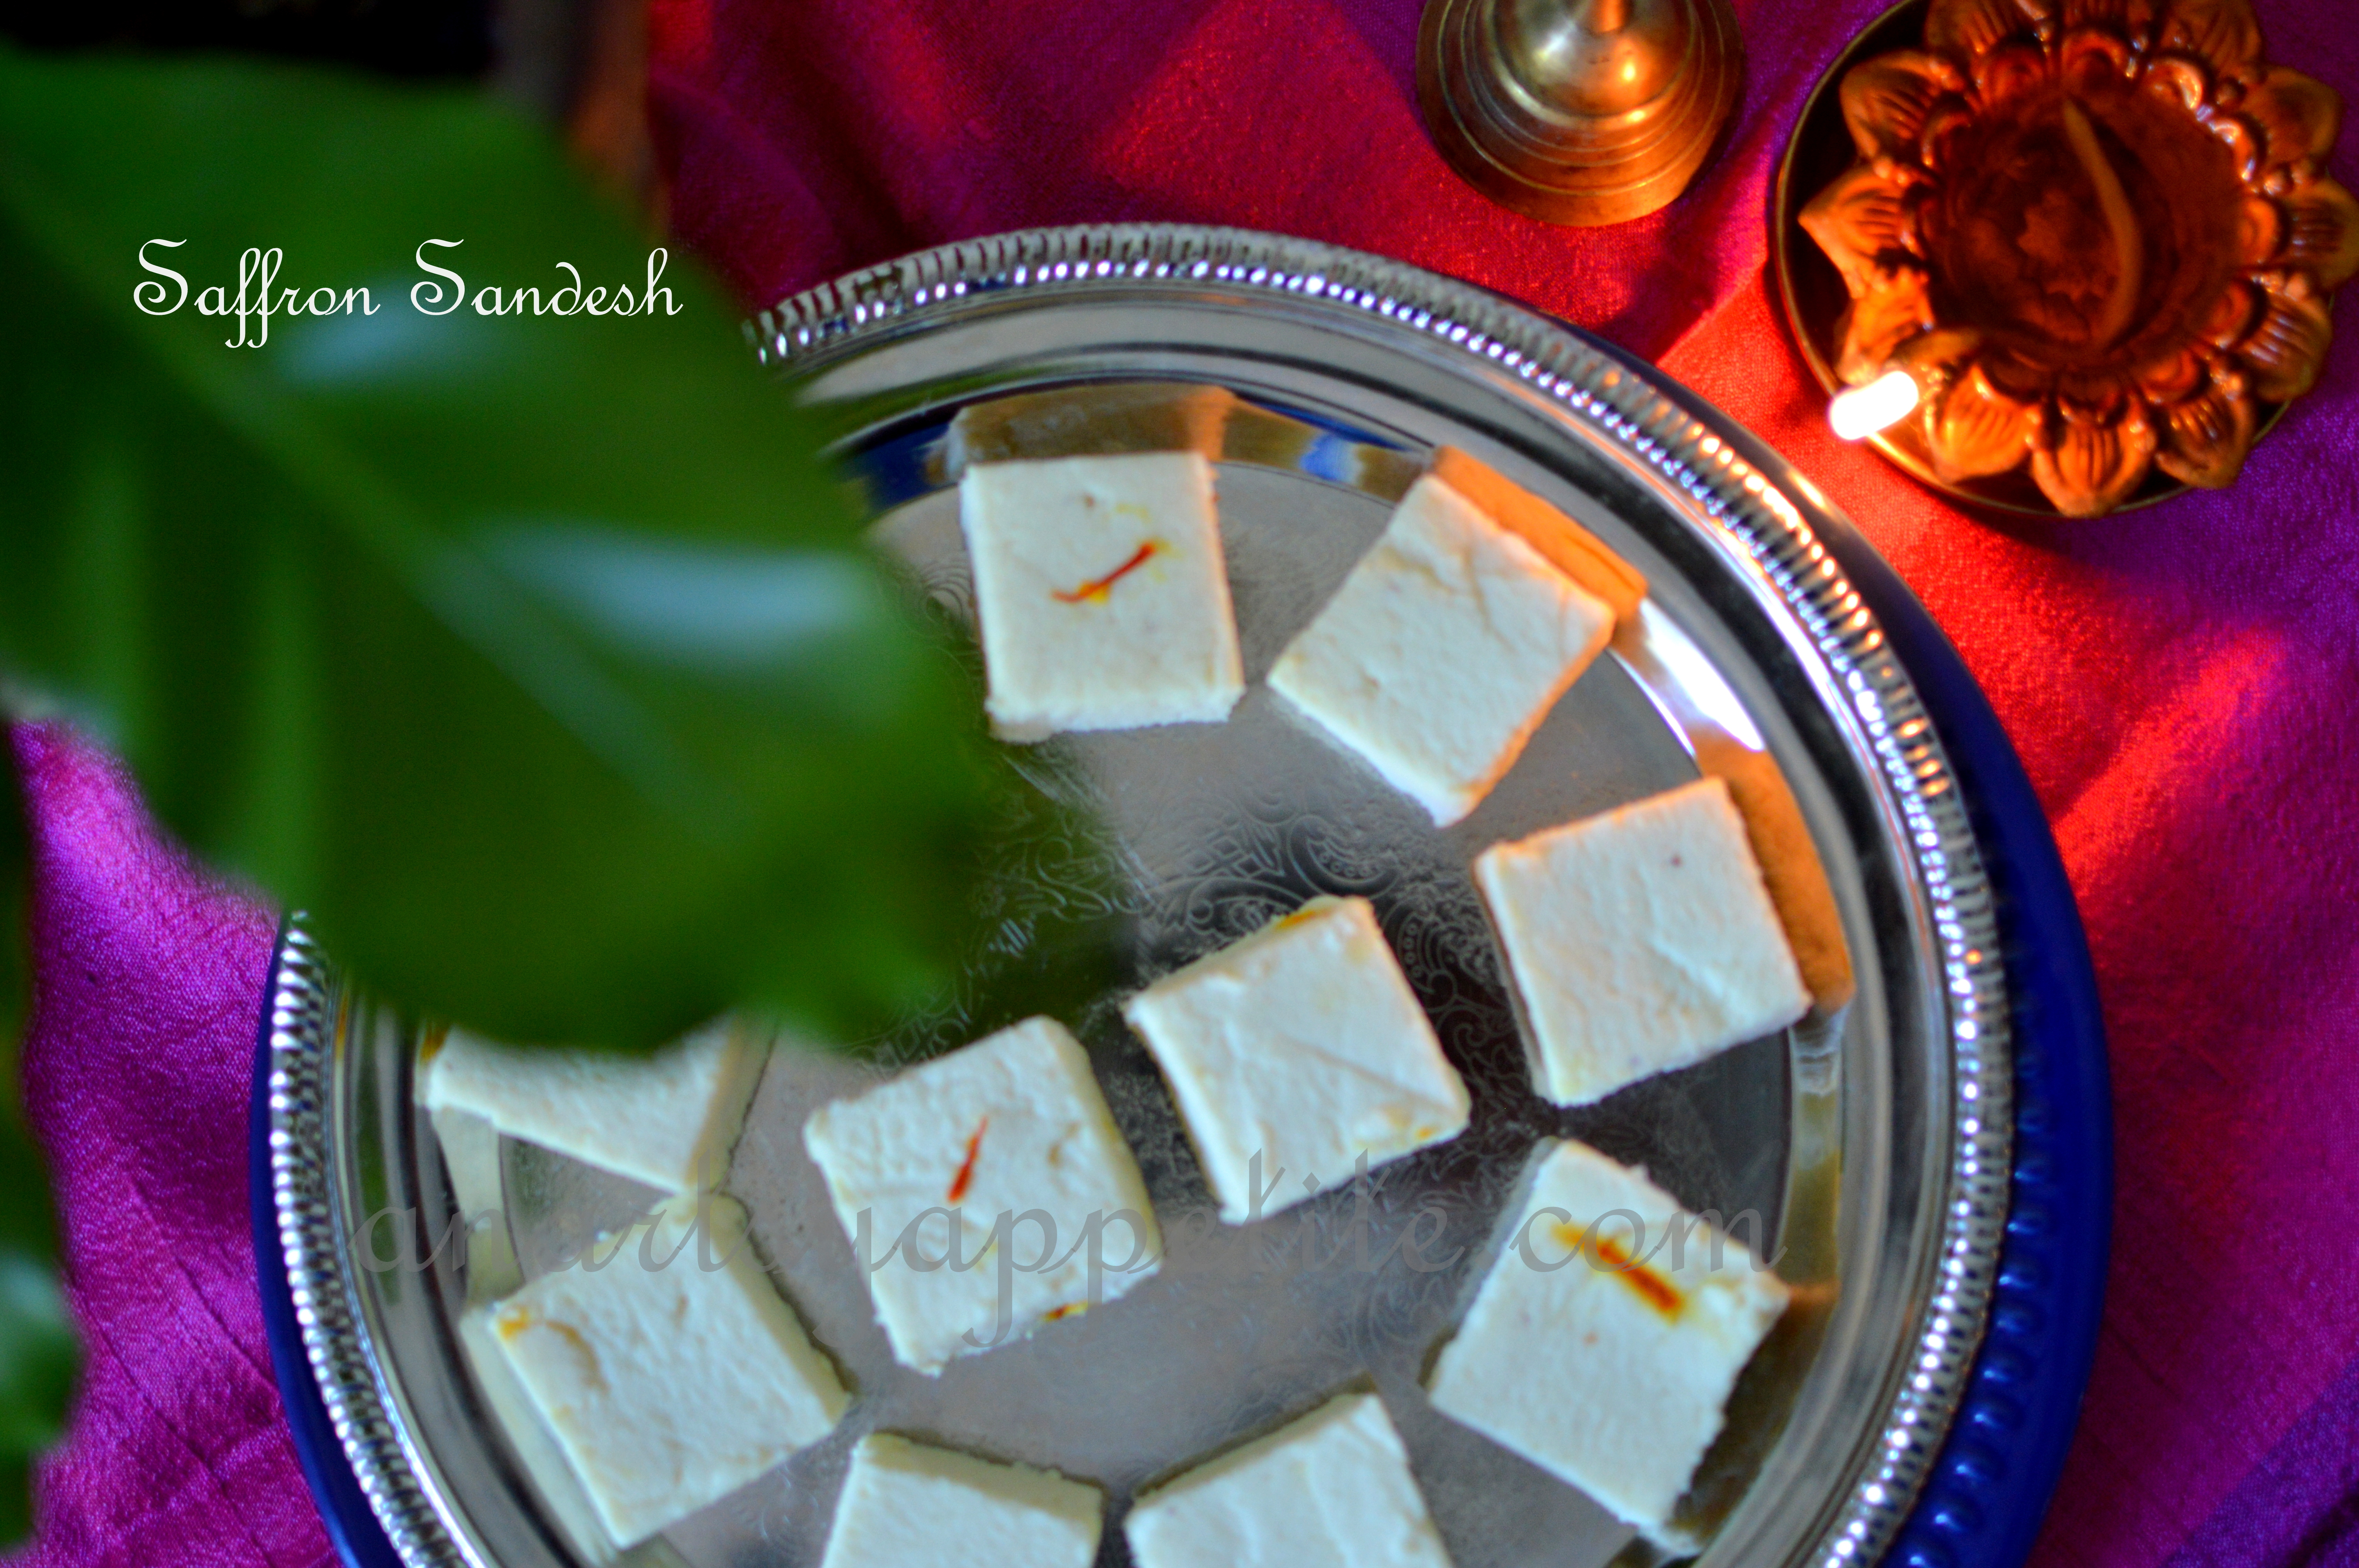 Bengali food recipes an artsy appetite saffron sandesh recipe bengali saffron shondesh recipe how to make saffron shondesh bengali forumfinder Image collections